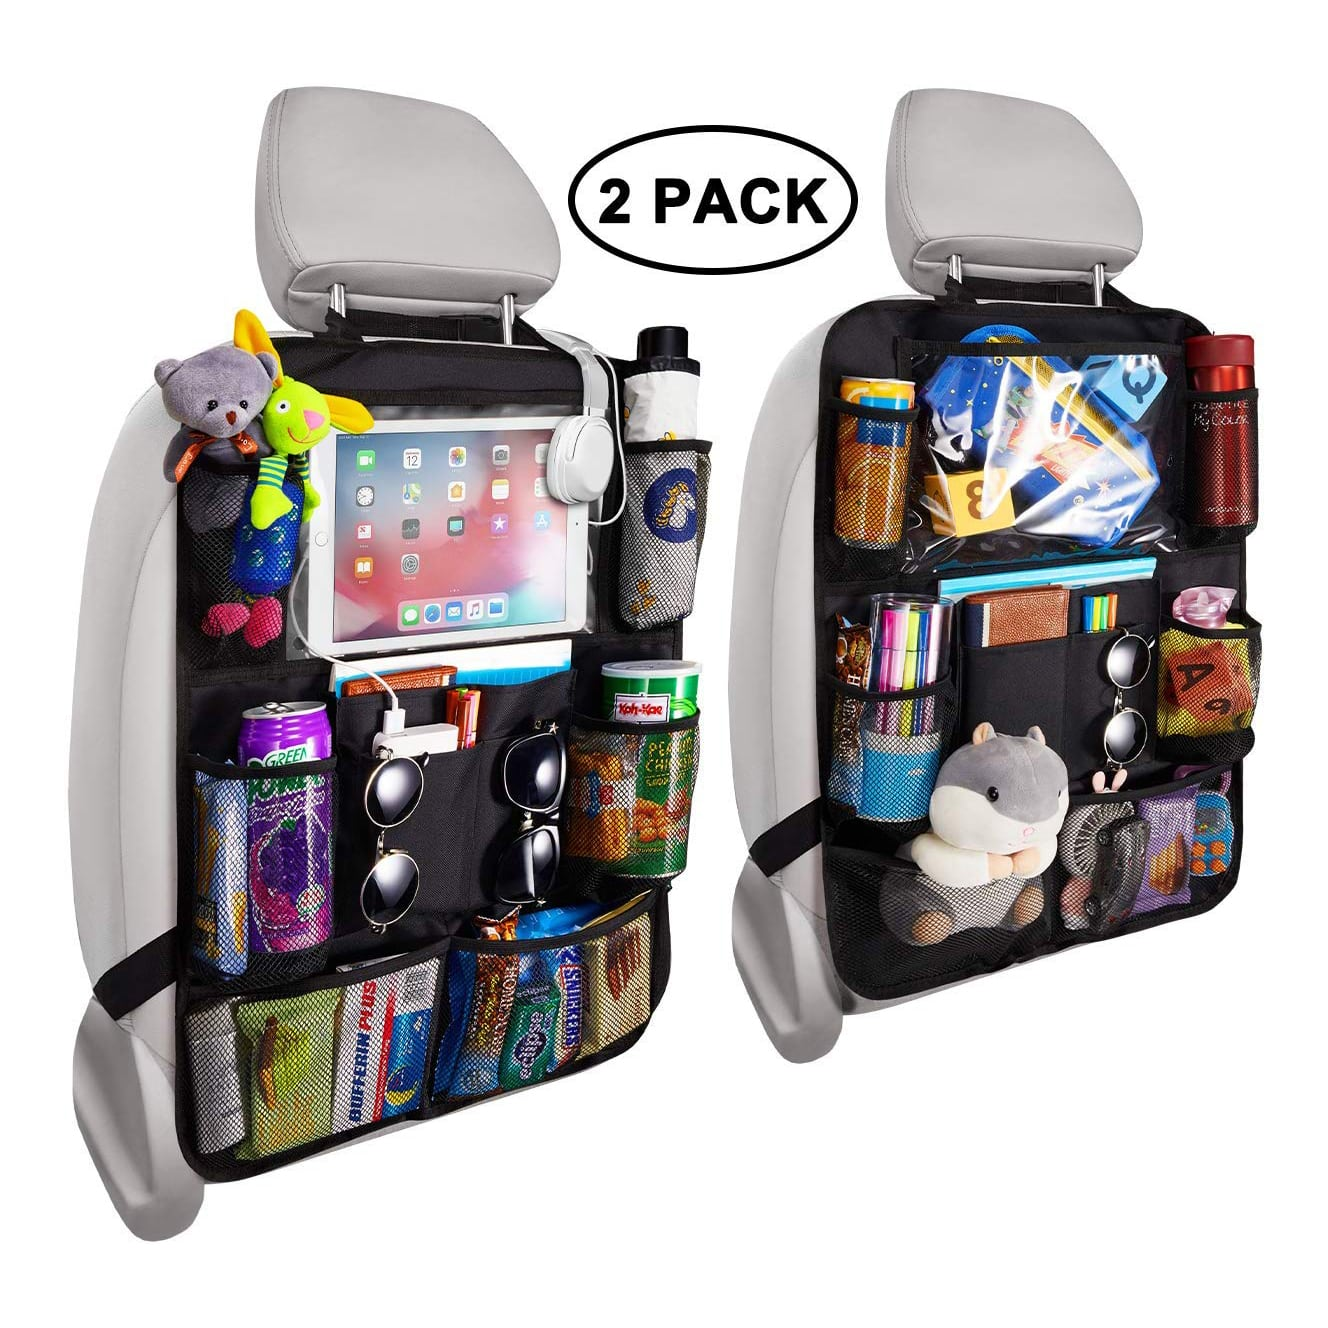 Reserwa Backseat Car Organizer with a Tablet Holder & Nine Storage Pockets